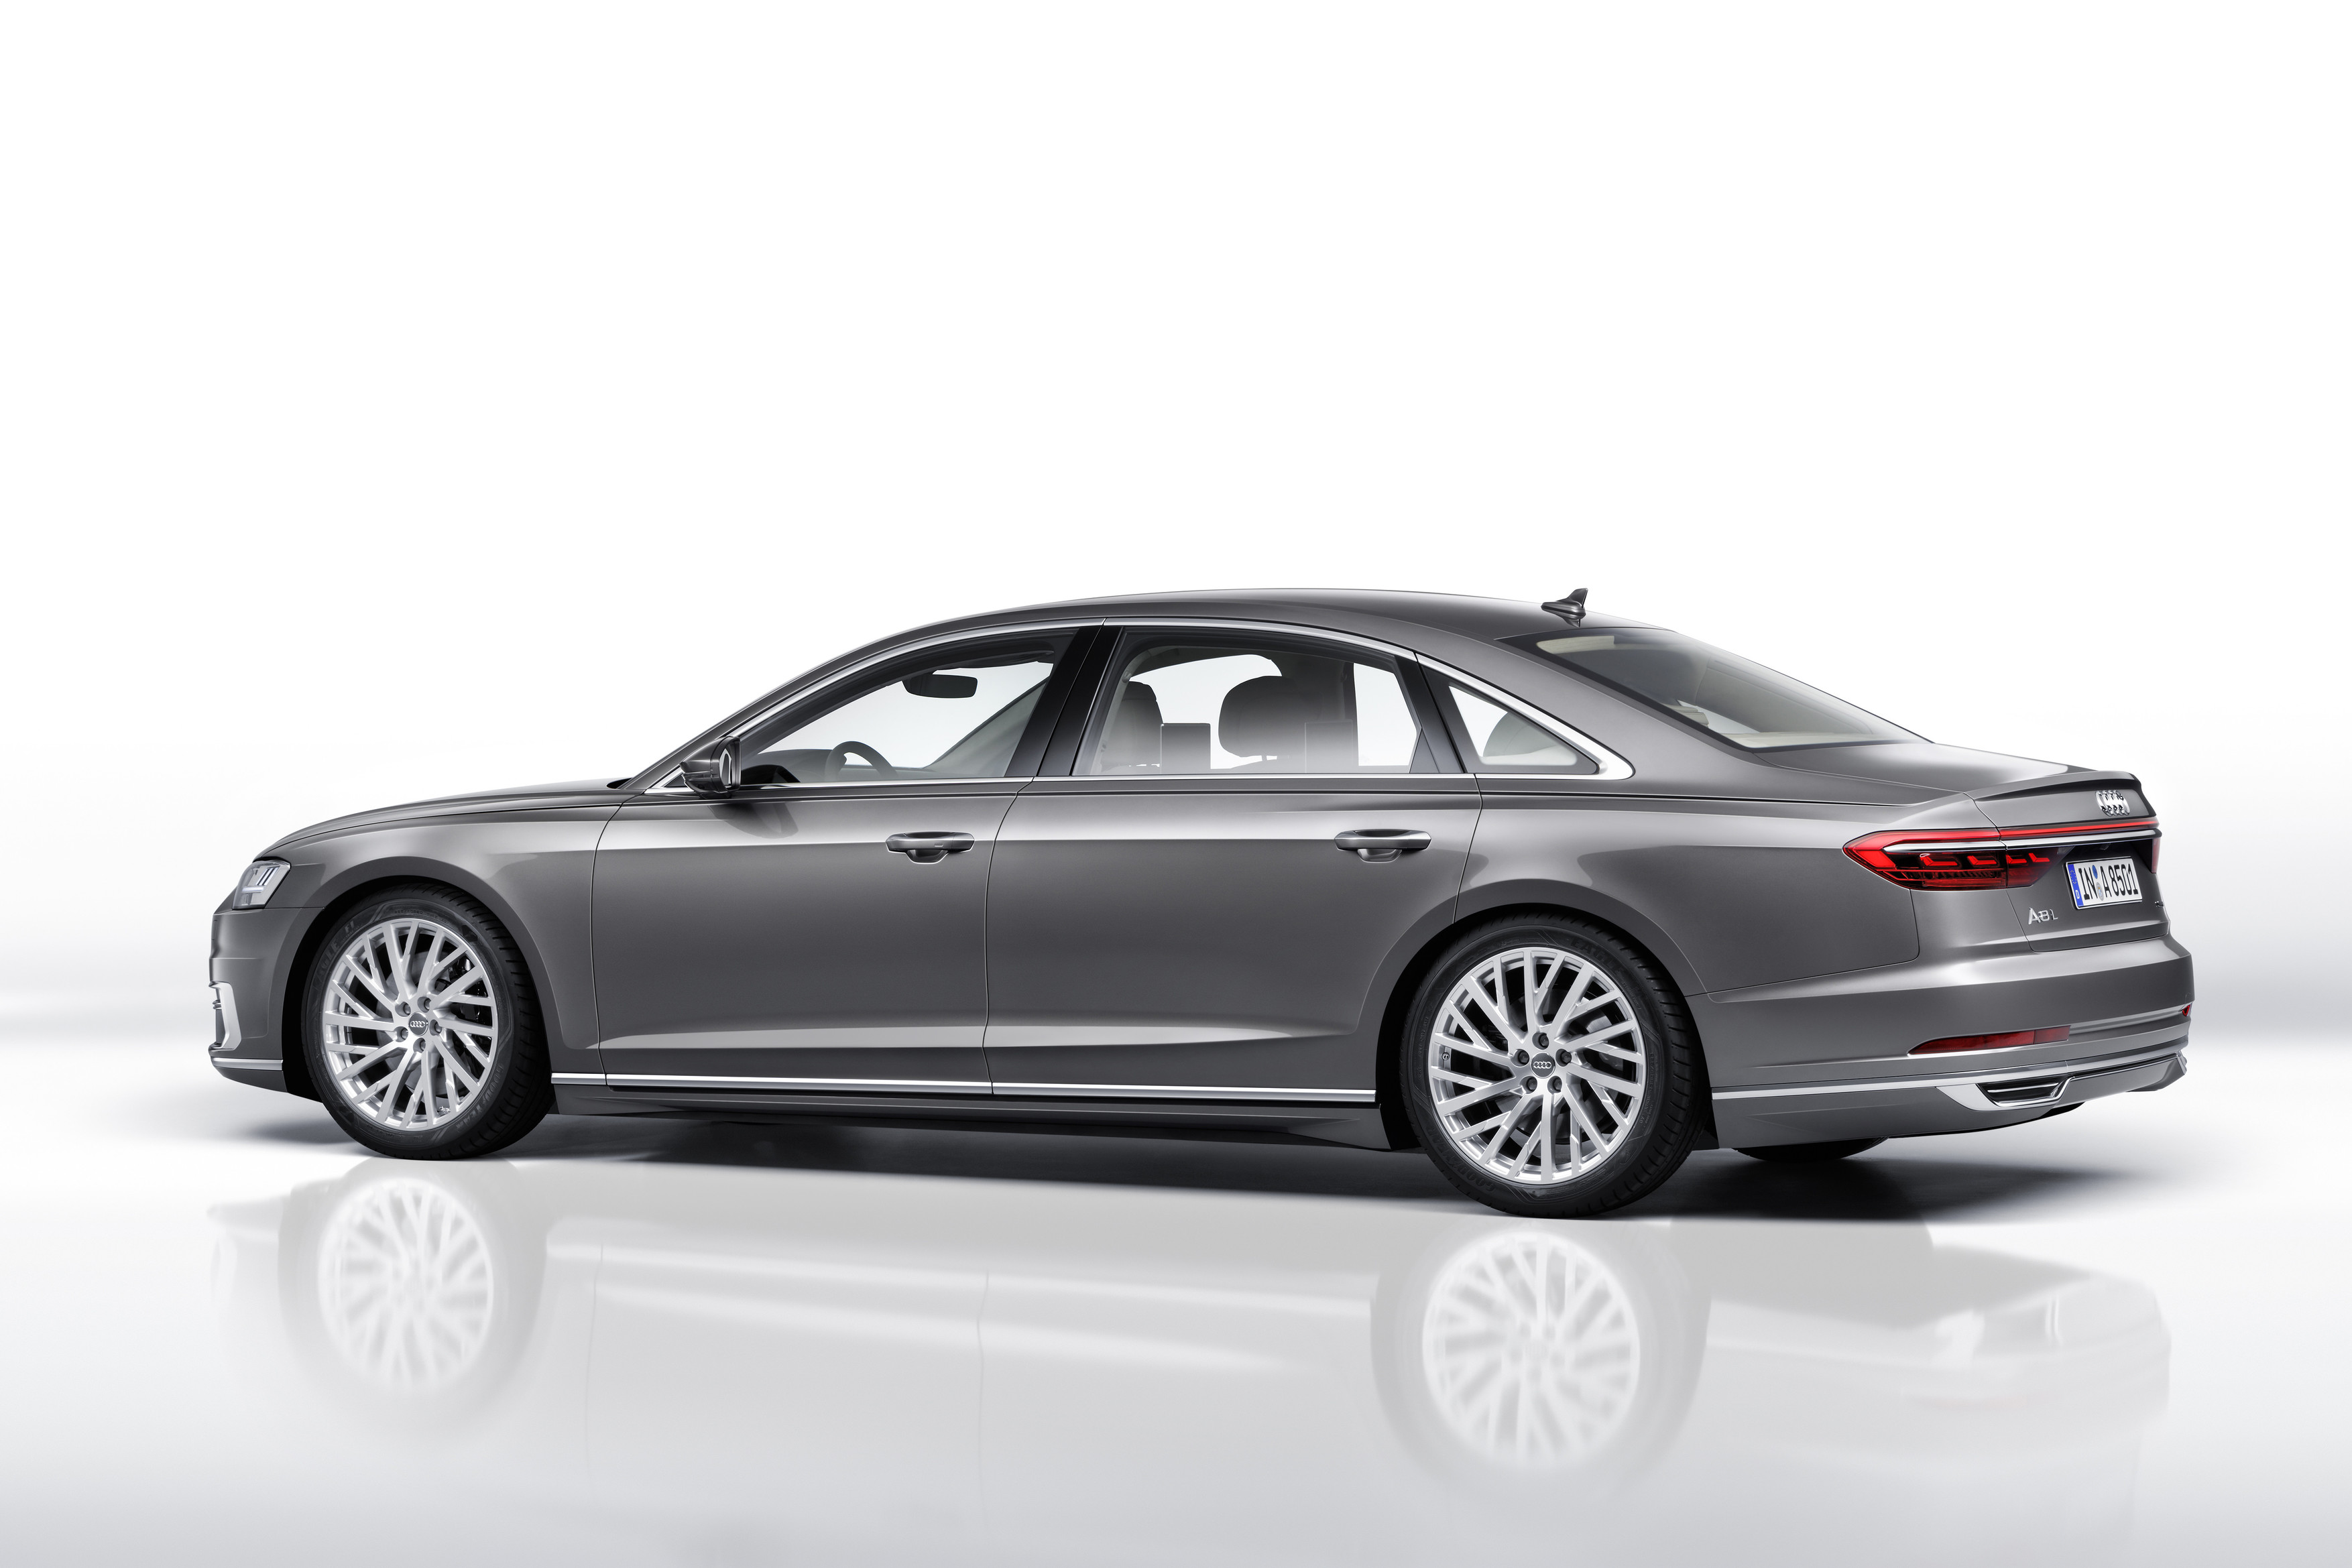 Audi A Debuts Packed With FutureFacing Tech The Drive - Audi a8